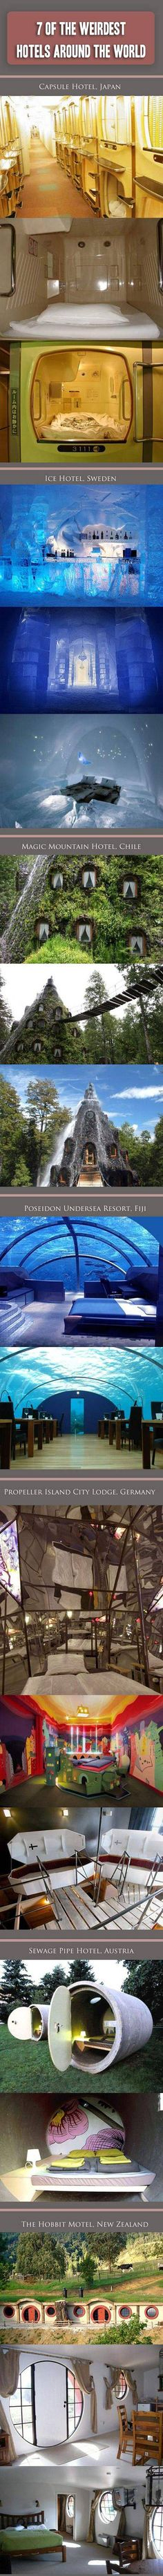 hen is a hotel, not just some place you go for rest and relaxation? When the hotel is located underwater and has a clear glass canopy over each room that lets guests view the ocean life around them. Here are 7 more weird hotels that think outside the box.